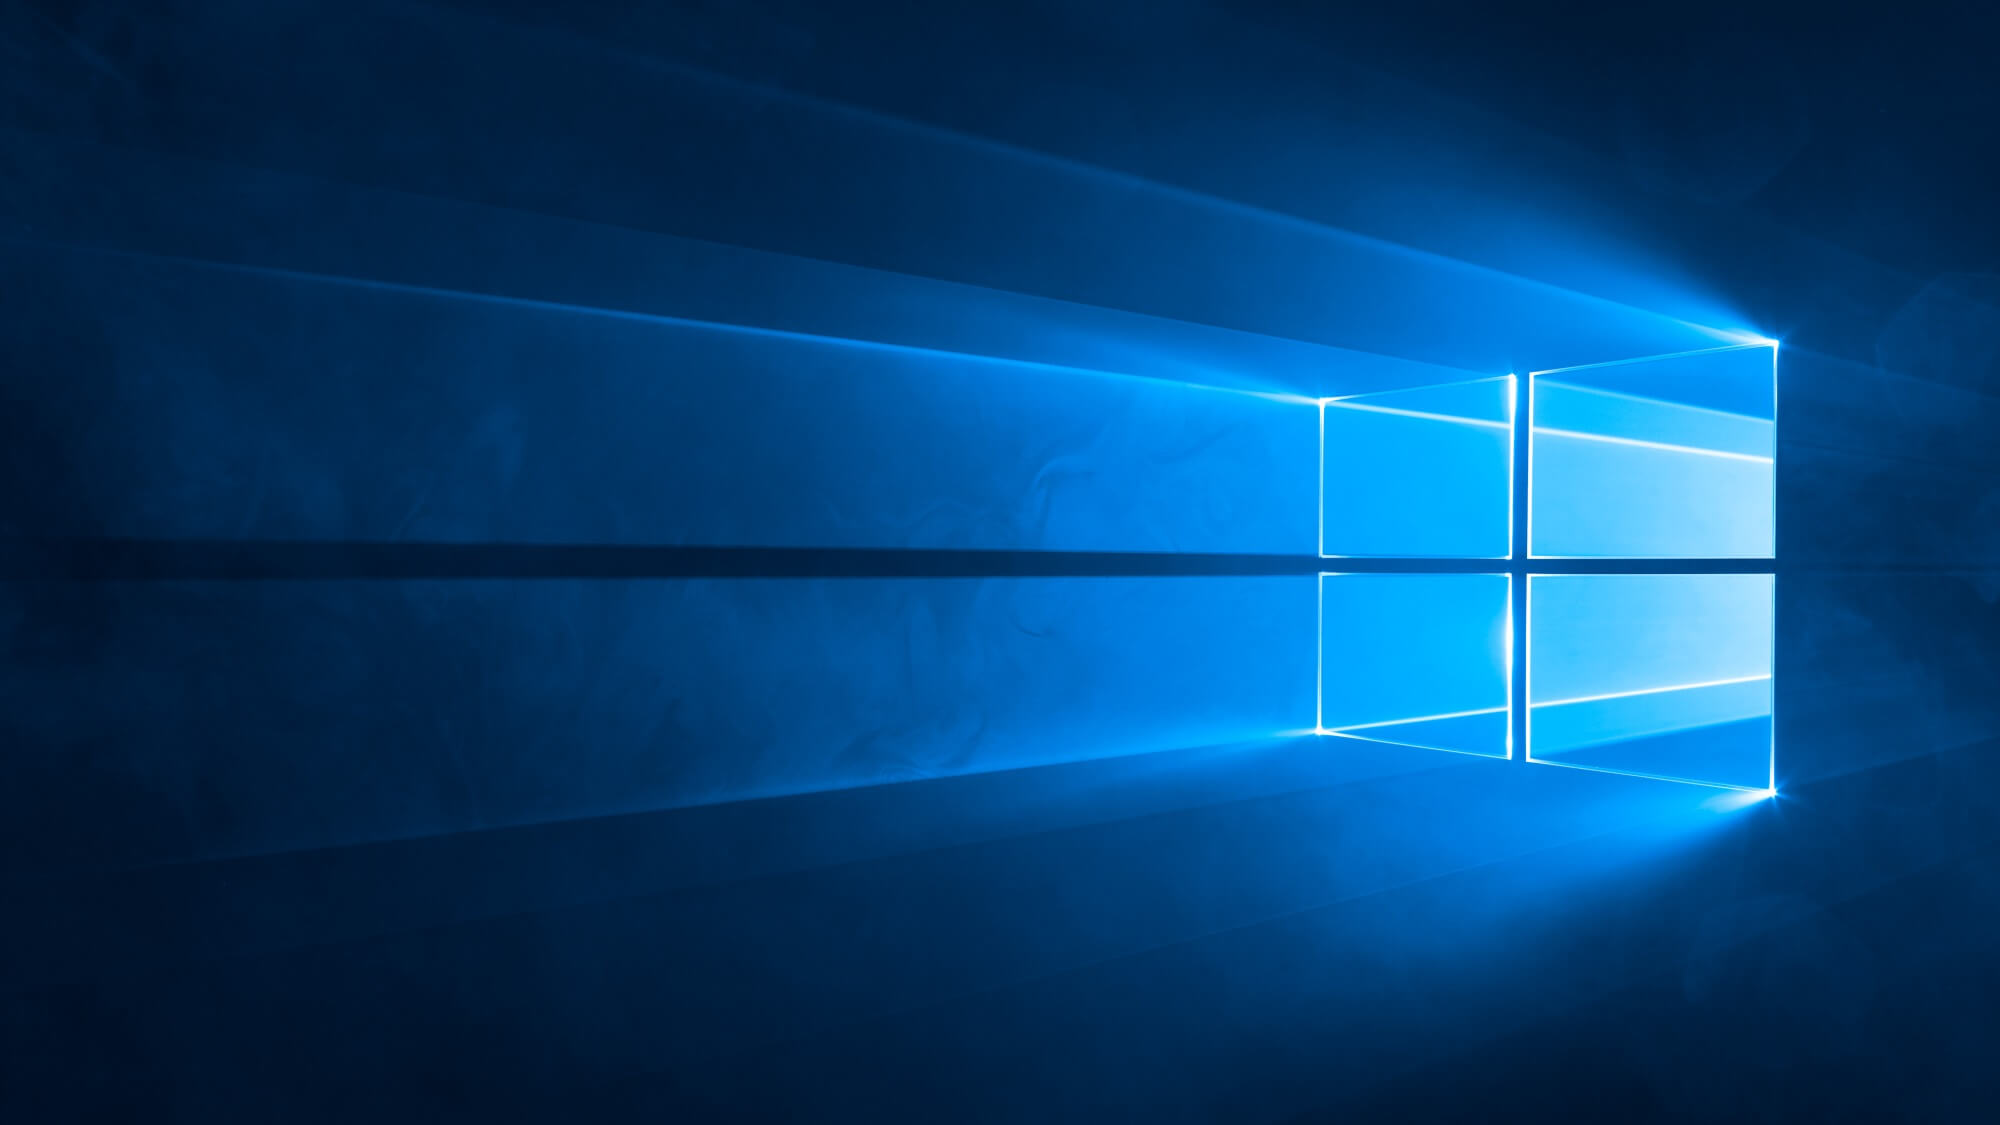 Microsoft releases new Windows 10 preview with Cortana Show Me